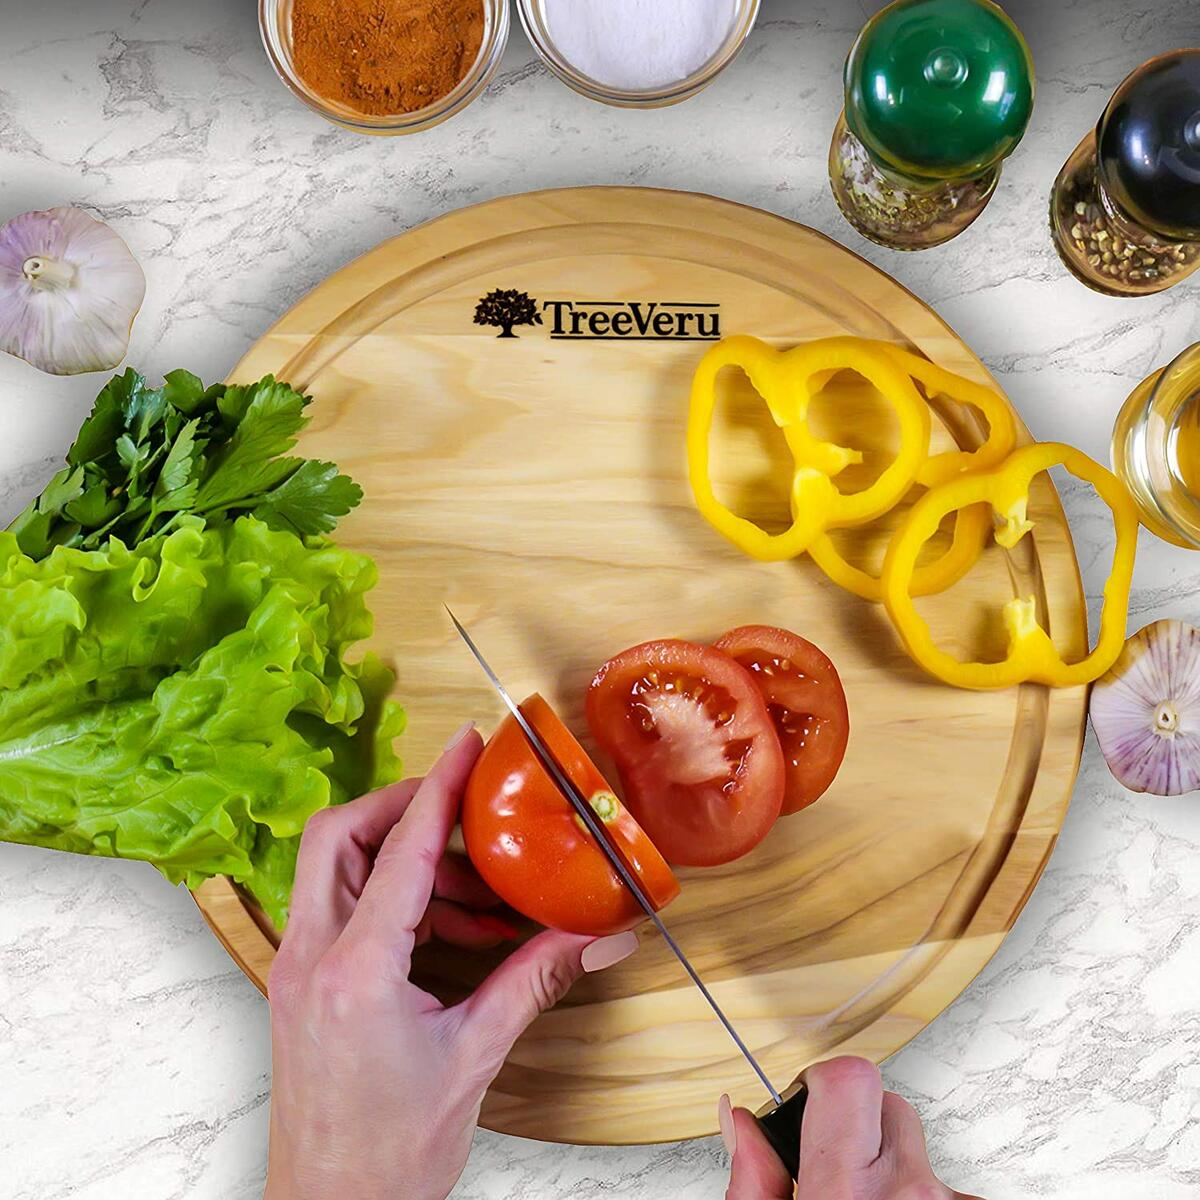 "TreeVeru Wood Round Cutting Board - Small Circular Cutting Board with Juice Drip Groove 11.8"", Natural Durable Ash Chopping Circle Serving Board"